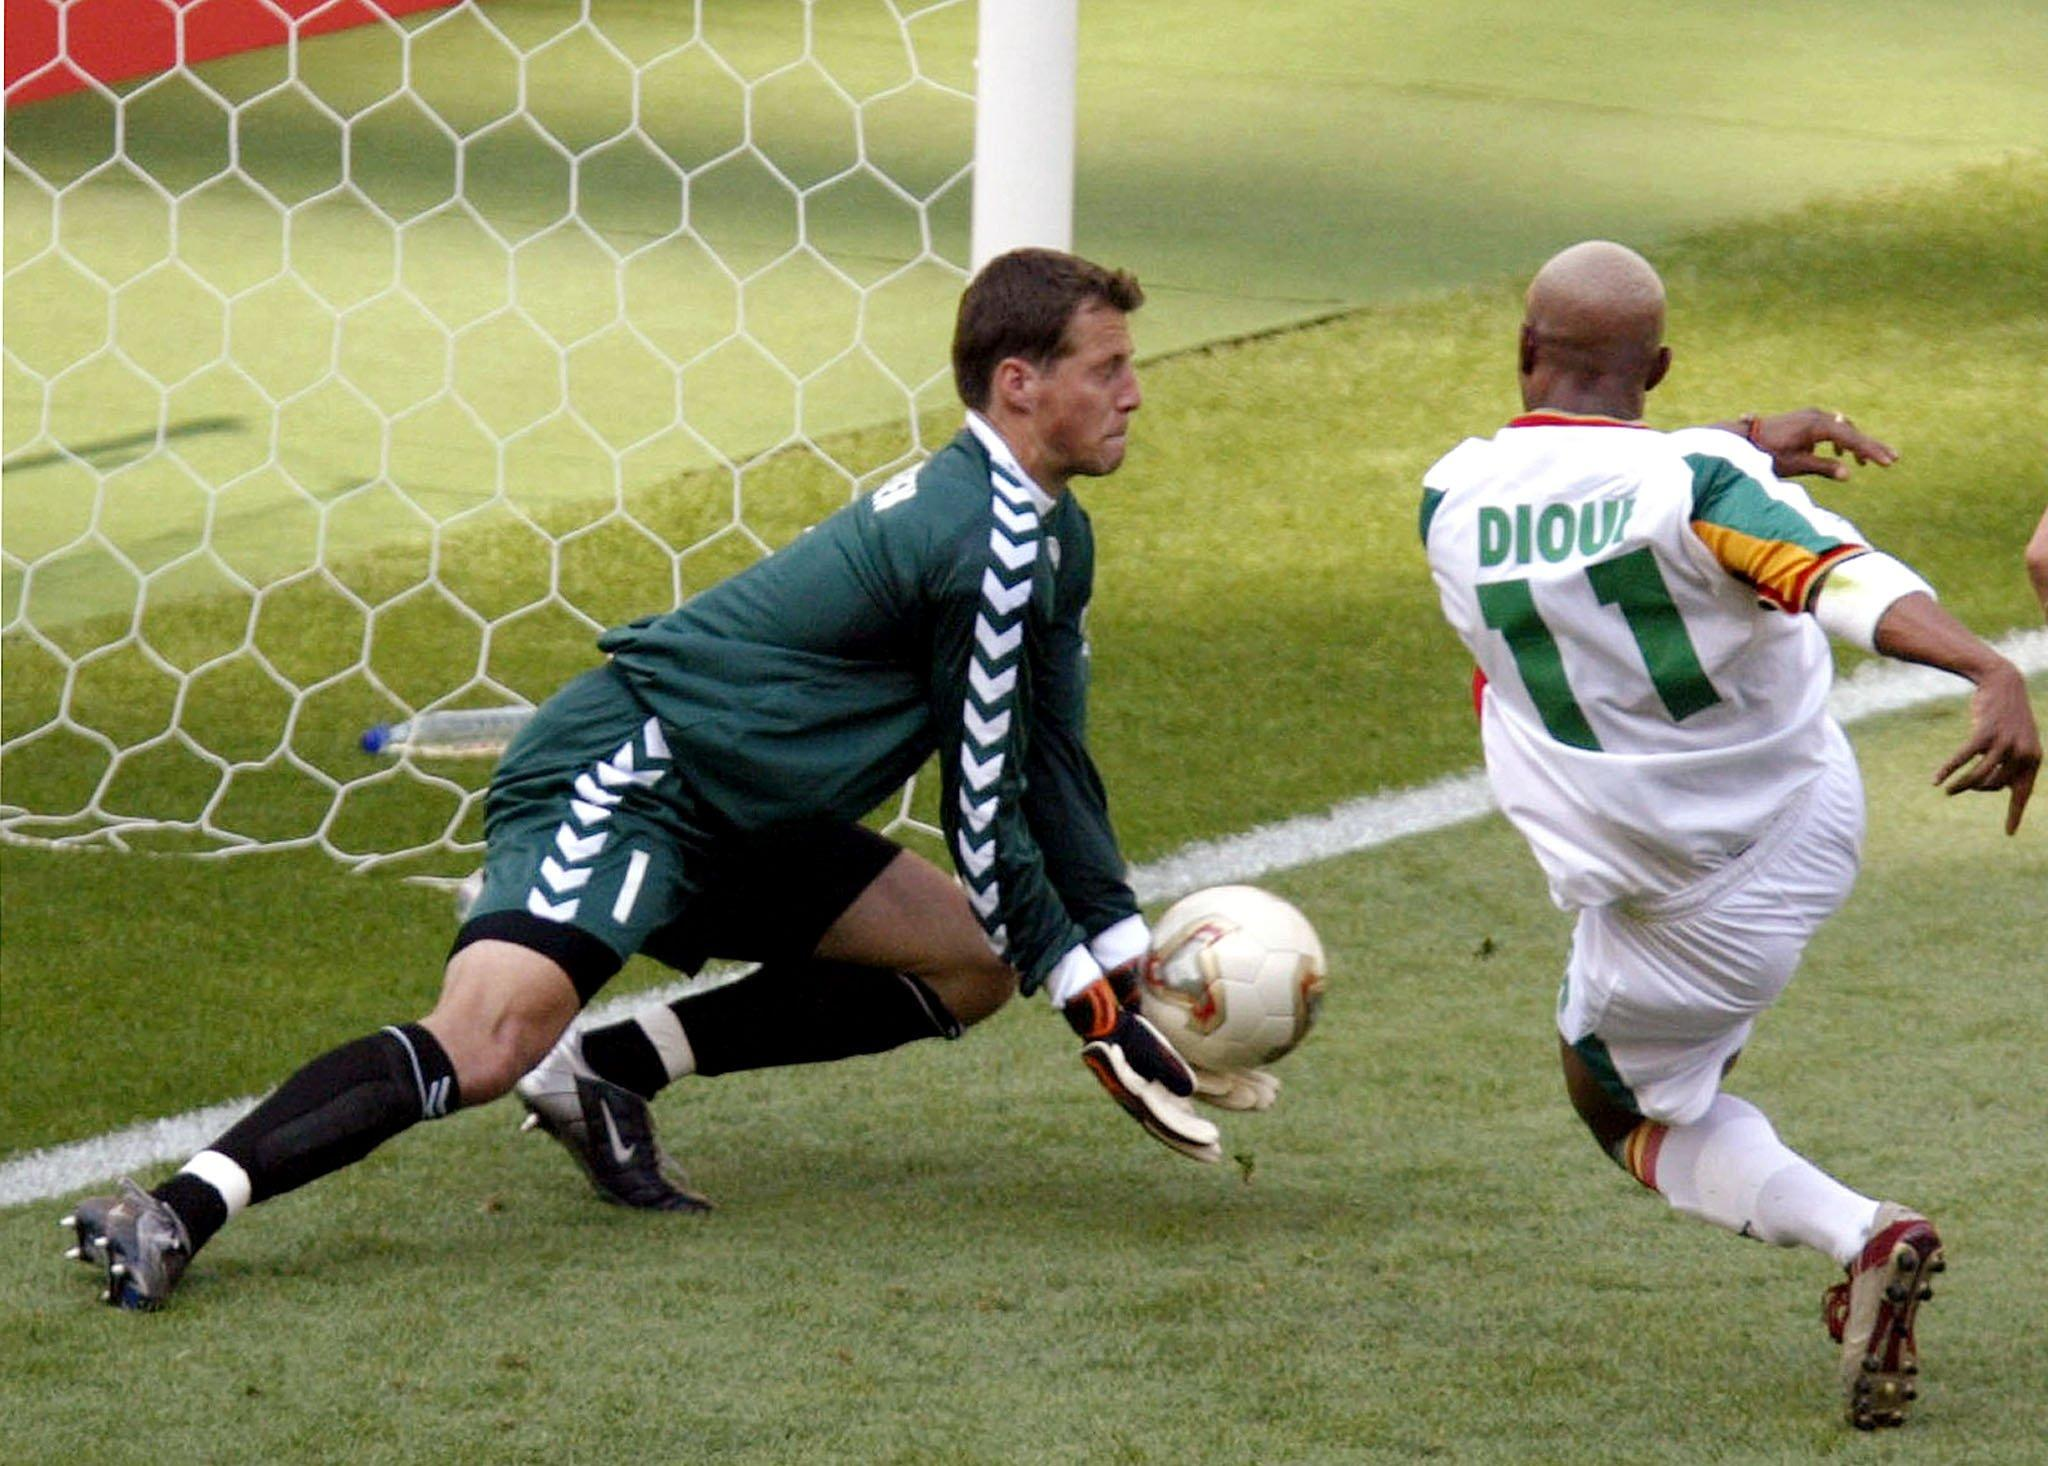 We all lost our s**t over El Hadji Diouf in 2002